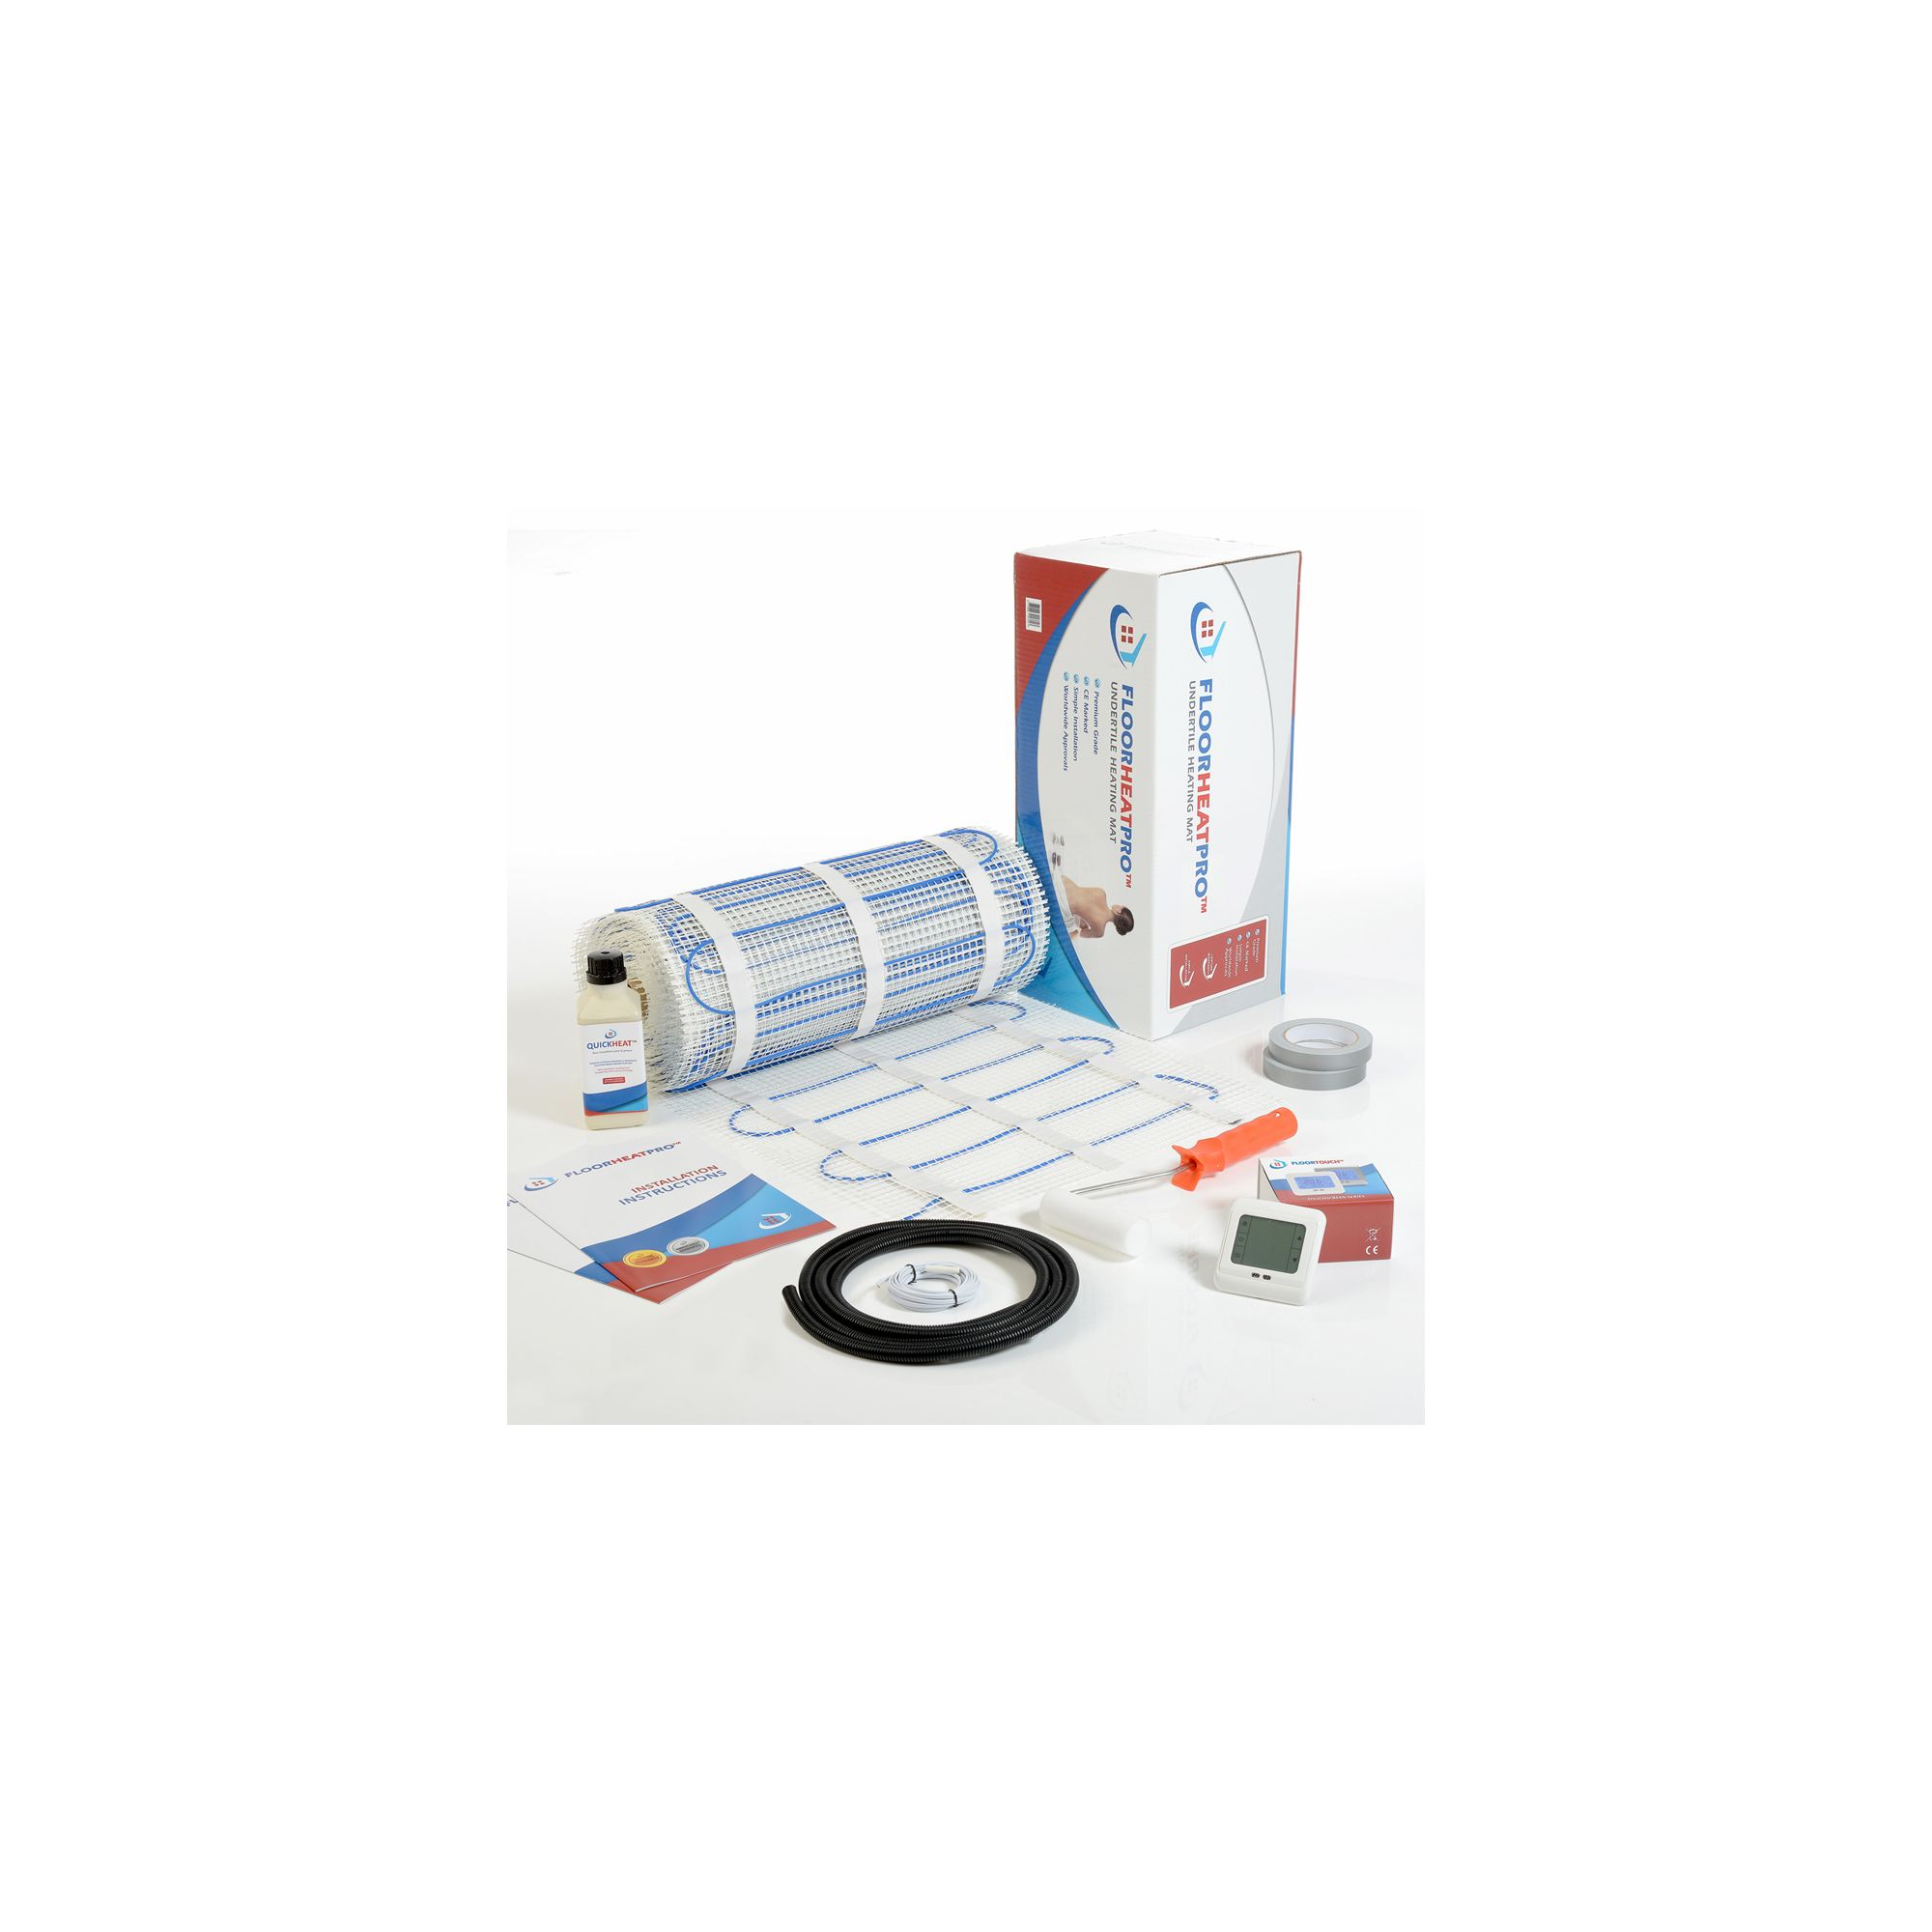 24.0m2 - Underfloor Electric Heating Kit 150w/m2 - Tiles at Tesco Direct